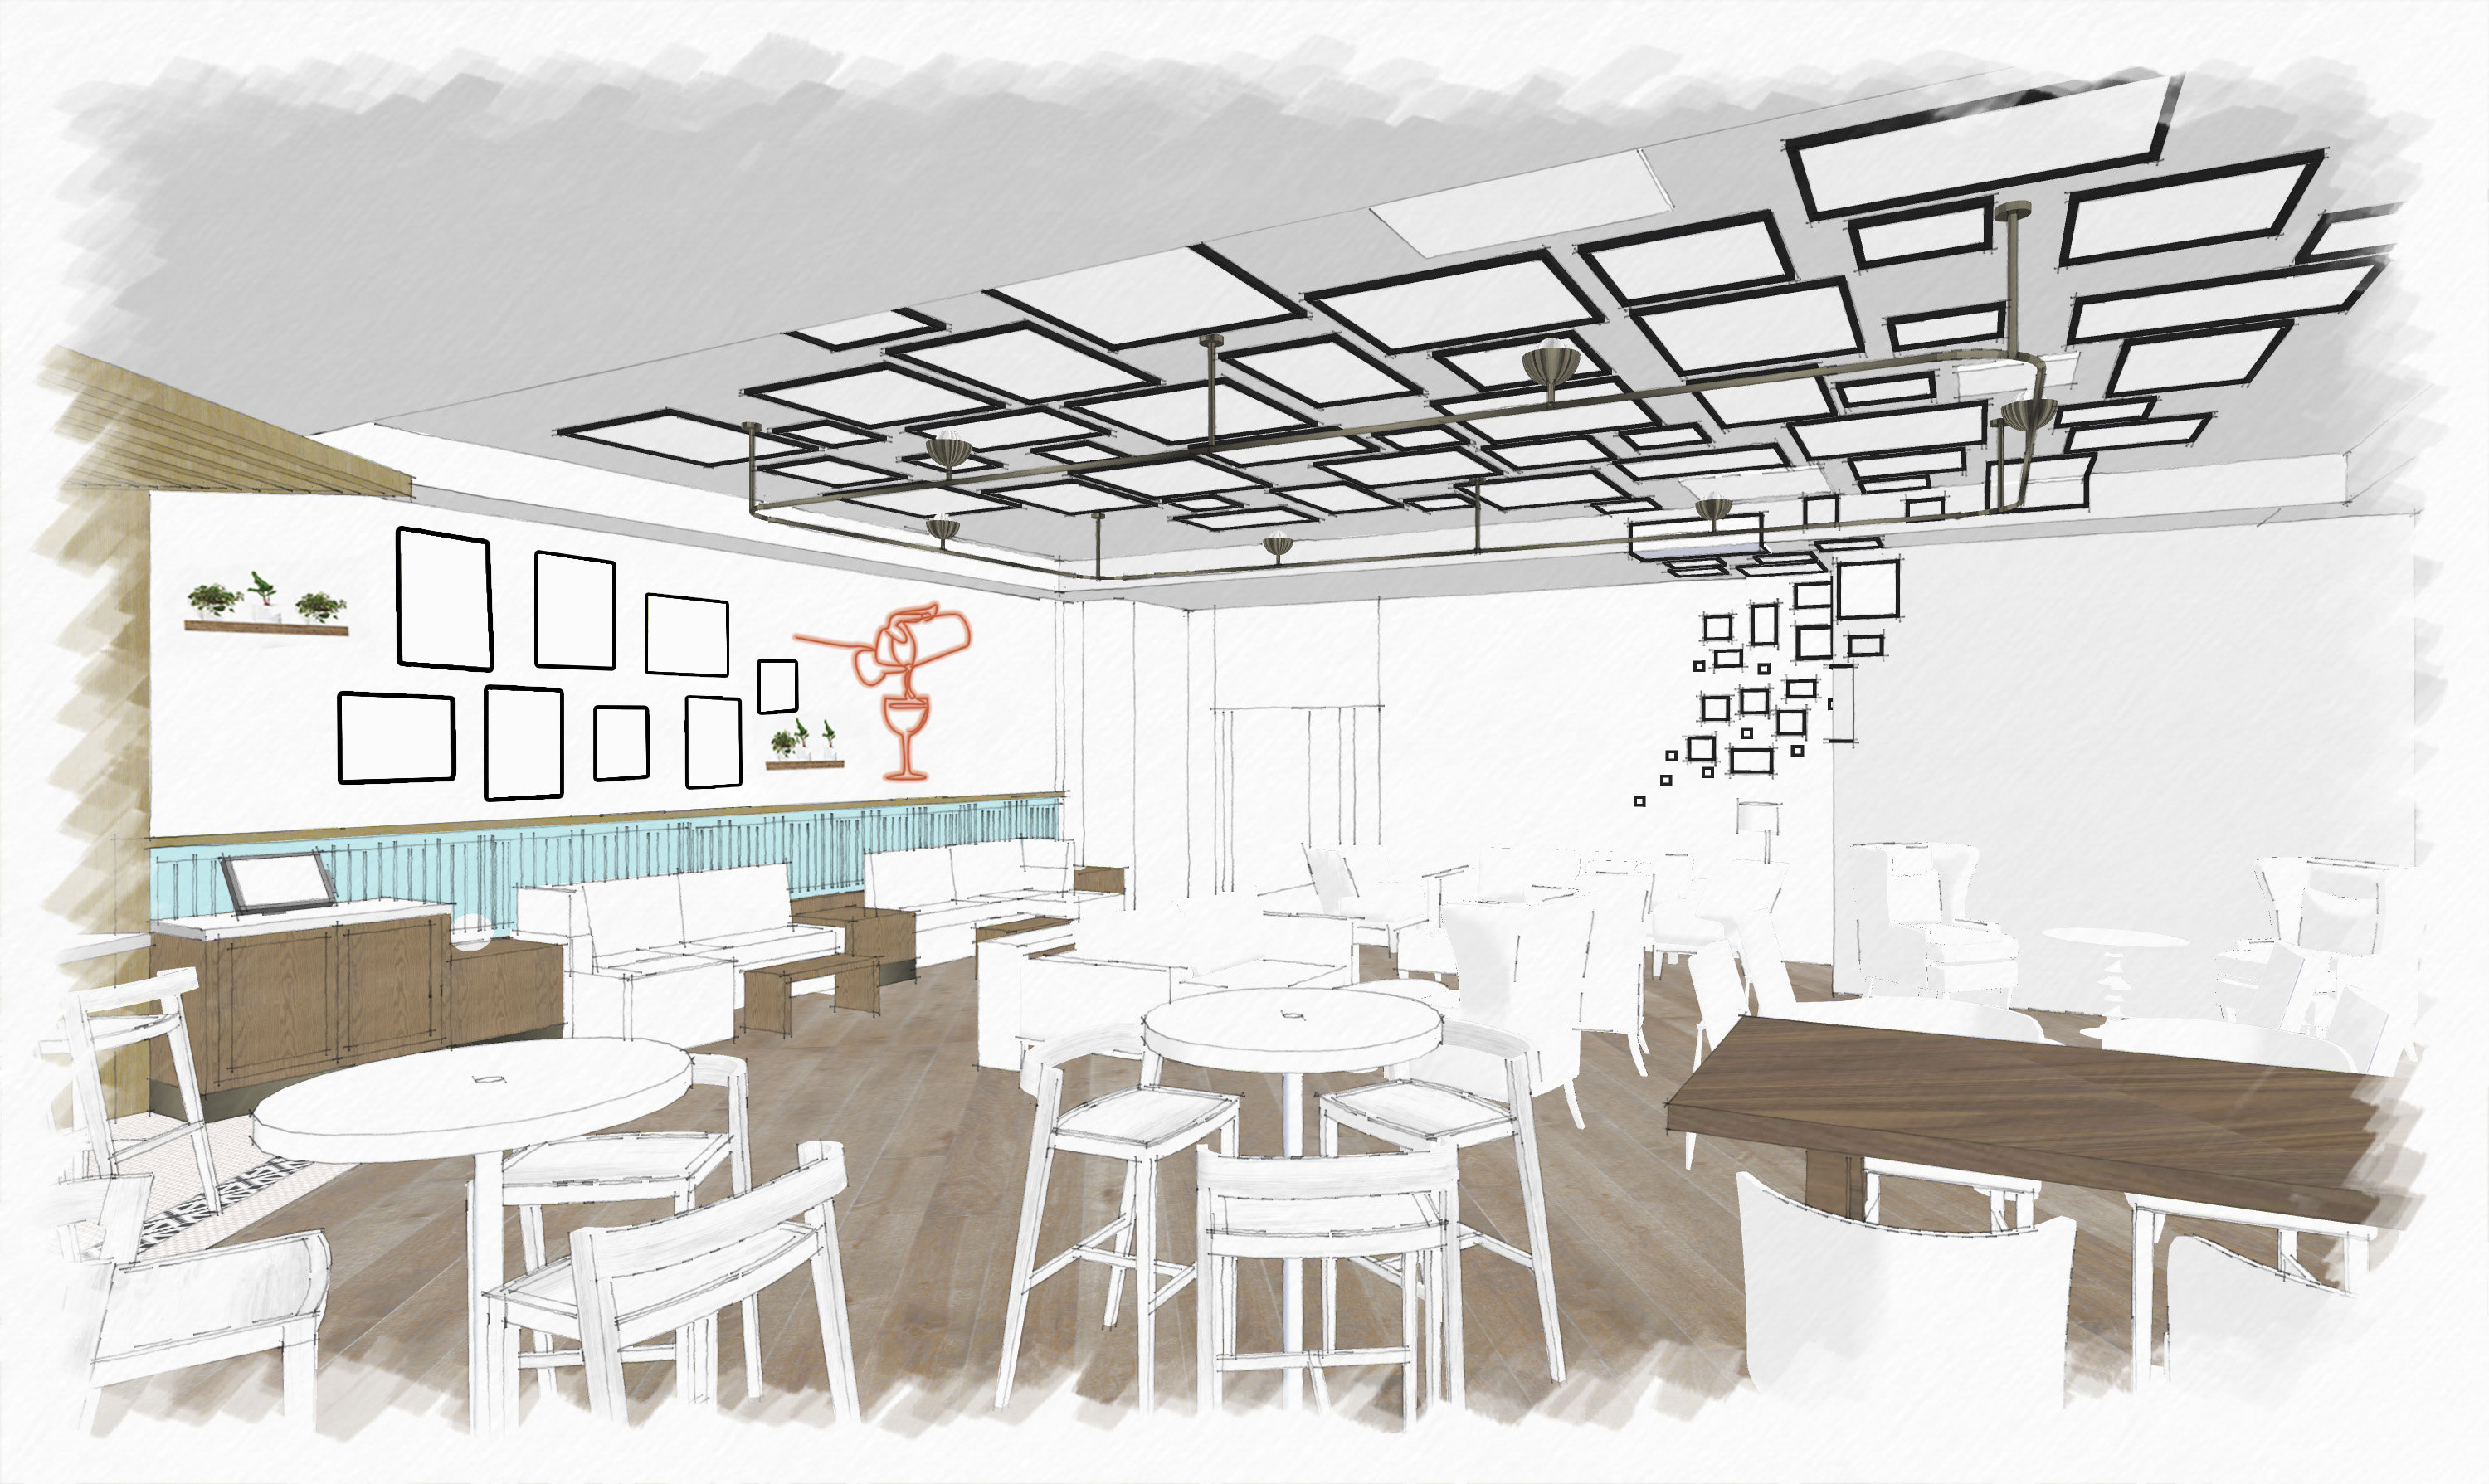 A design rendering of The Commentary's lounge from July 2019, featuring two large salon-style walls. This was an early image provided to our team pre-curation. Provided by EDG Interior Architecture + Design.